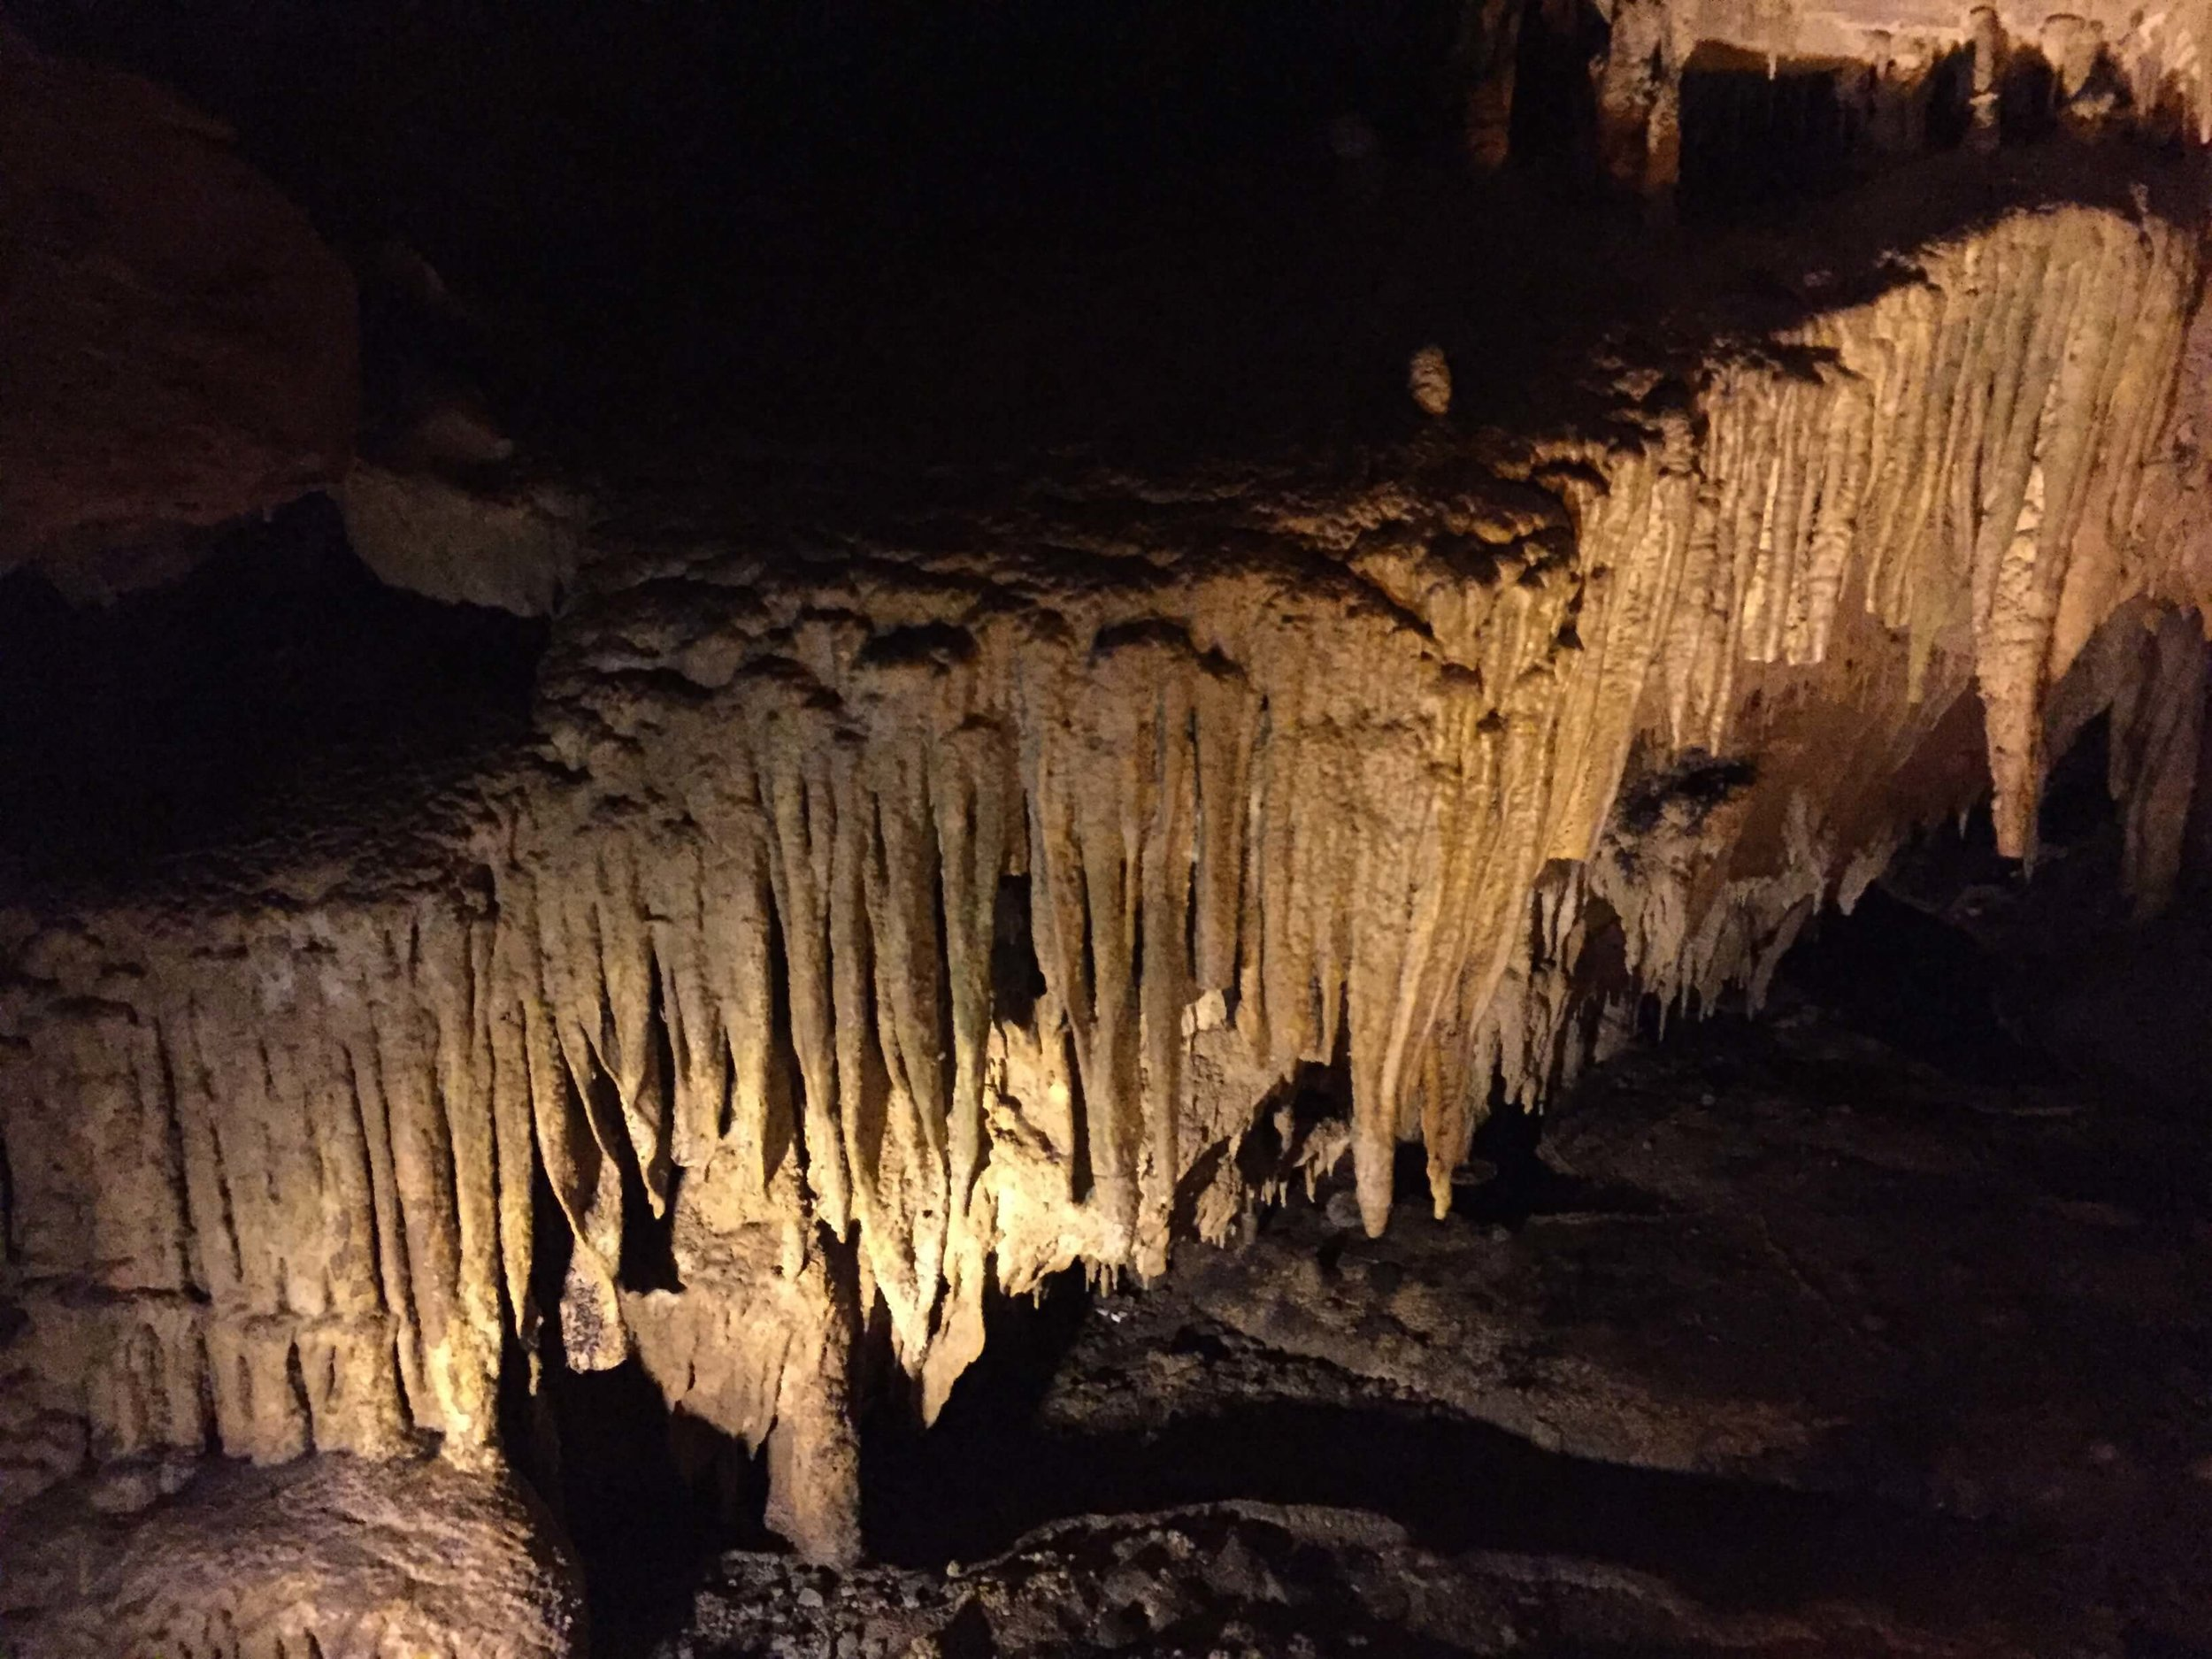 Typical cave formations